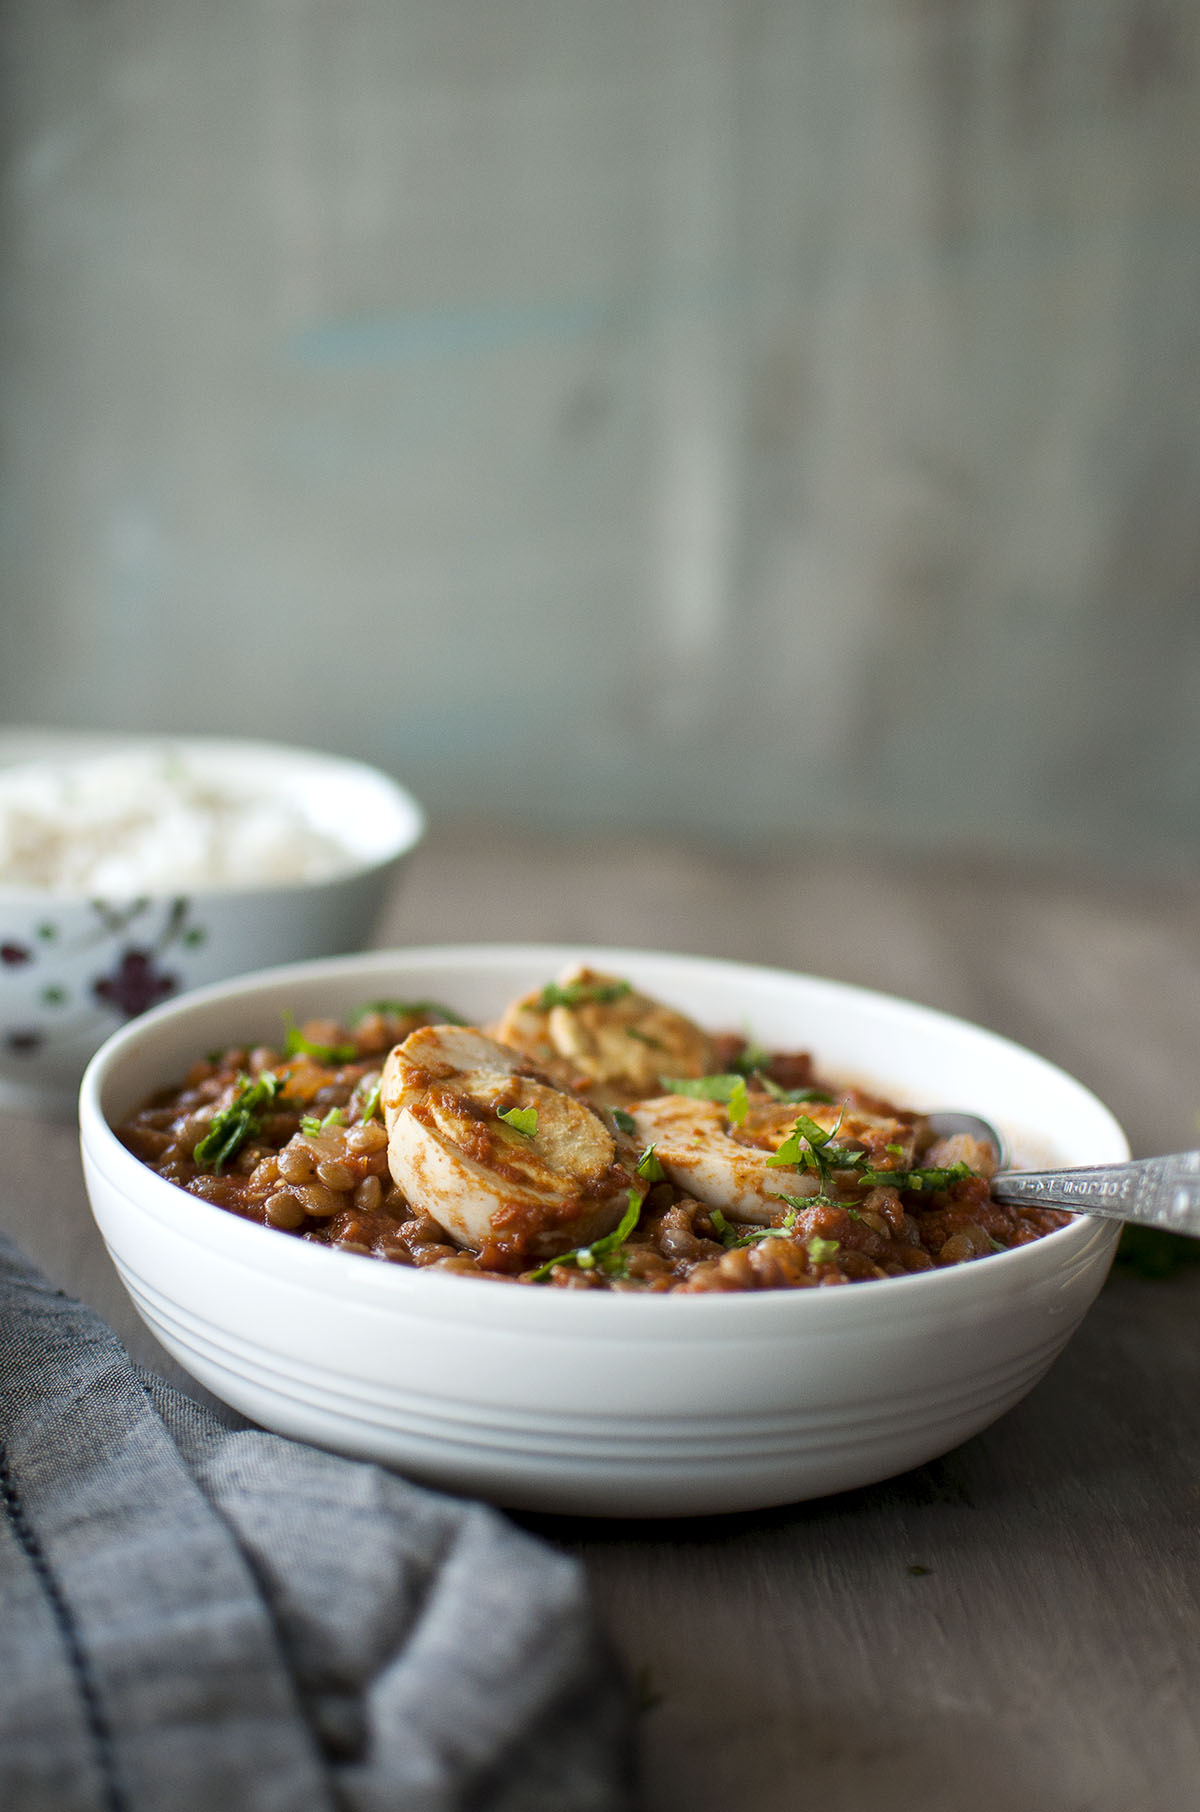 White bowl with egg and lentil curry